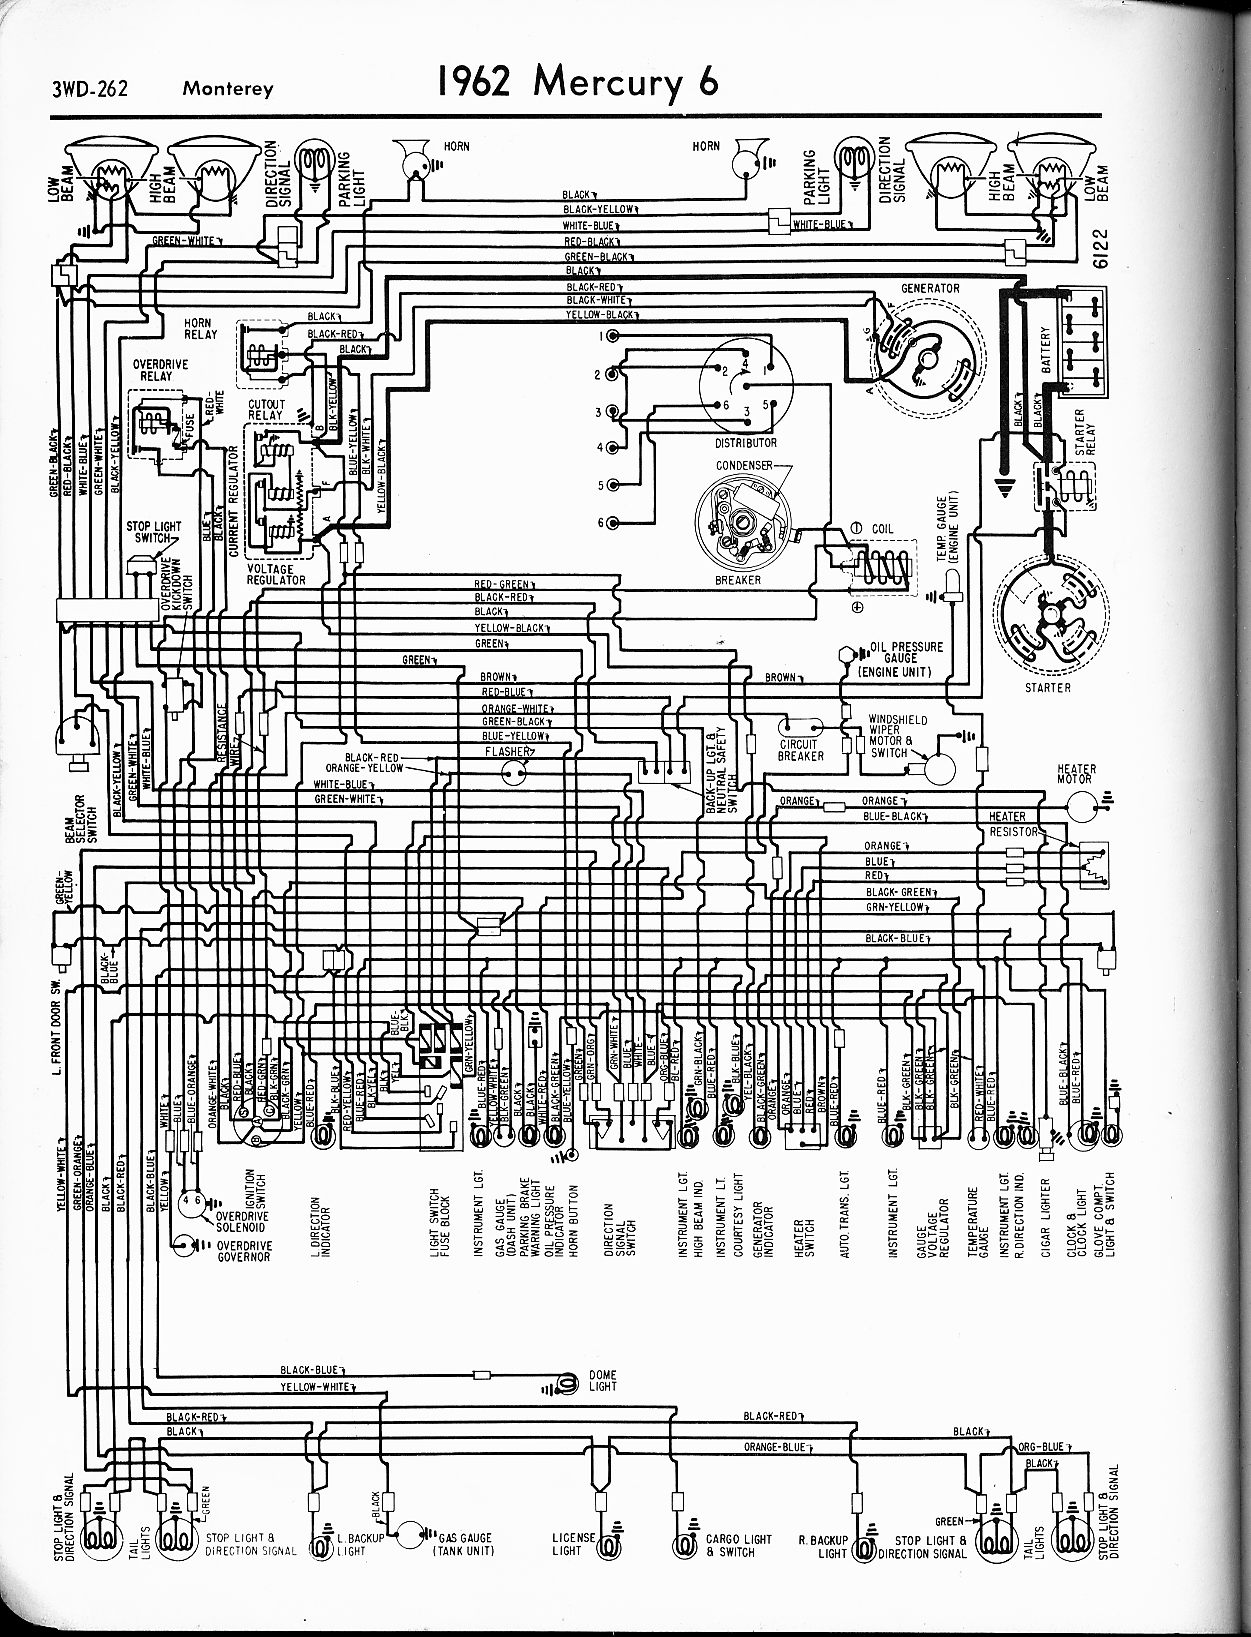 MWire5765 262 mercury wiring diagrams the old car manual project 1962 ford fairlane wiring diagram at reclaimingppi.co